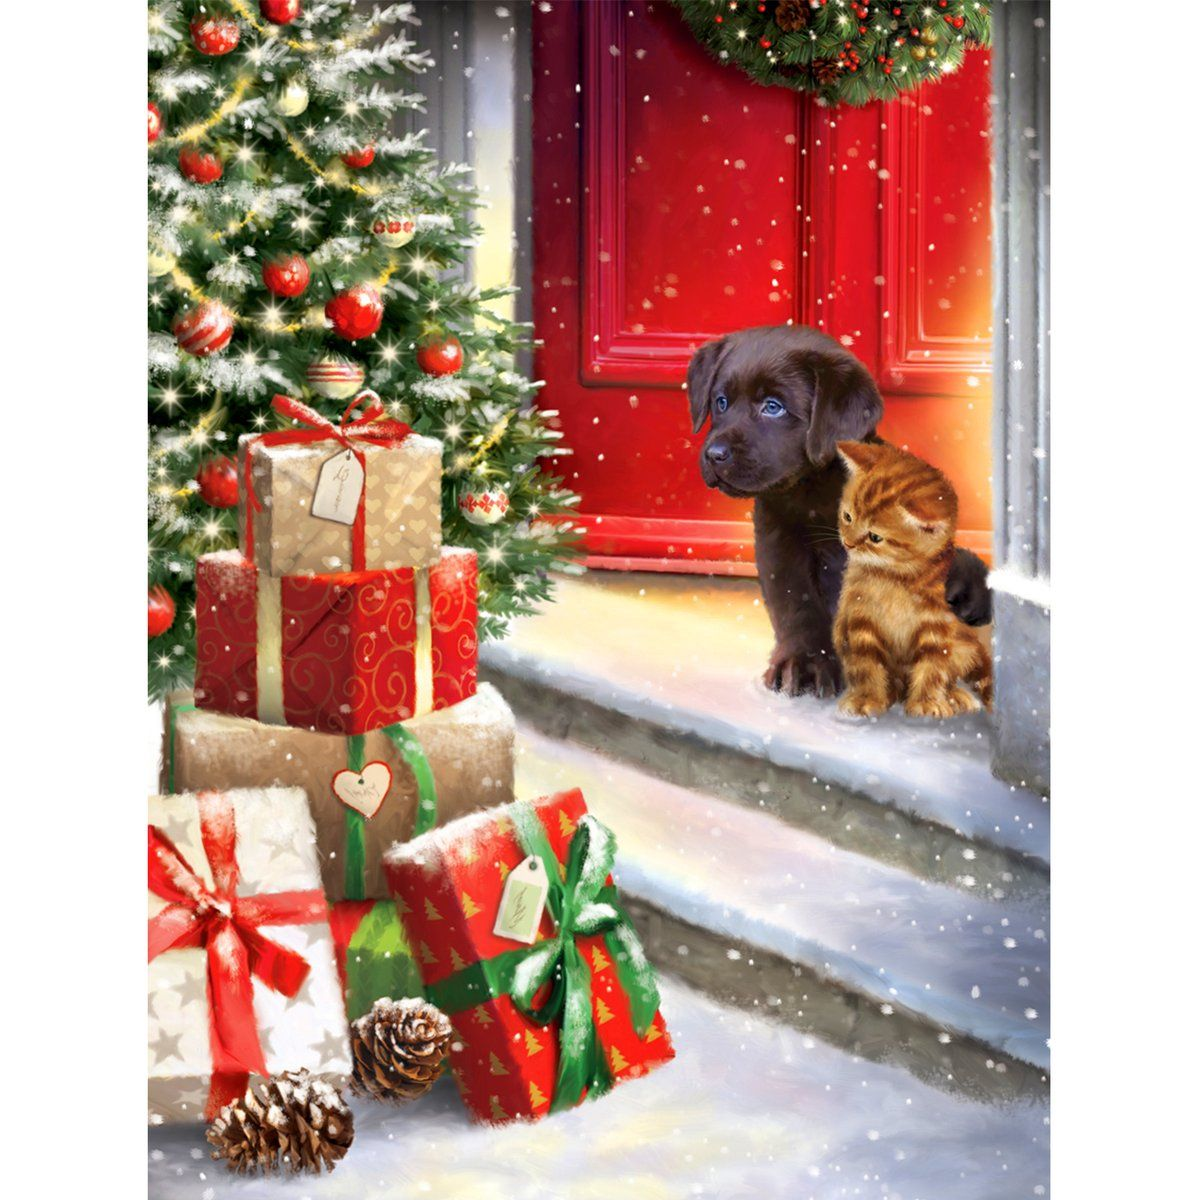 5d Diamond Painting Christmas Presents And Dogs And Cats Paint With Diamonds Art Crystal Craft Decor In 2020 Diamond Painting Crystal Crafts Cat Painting